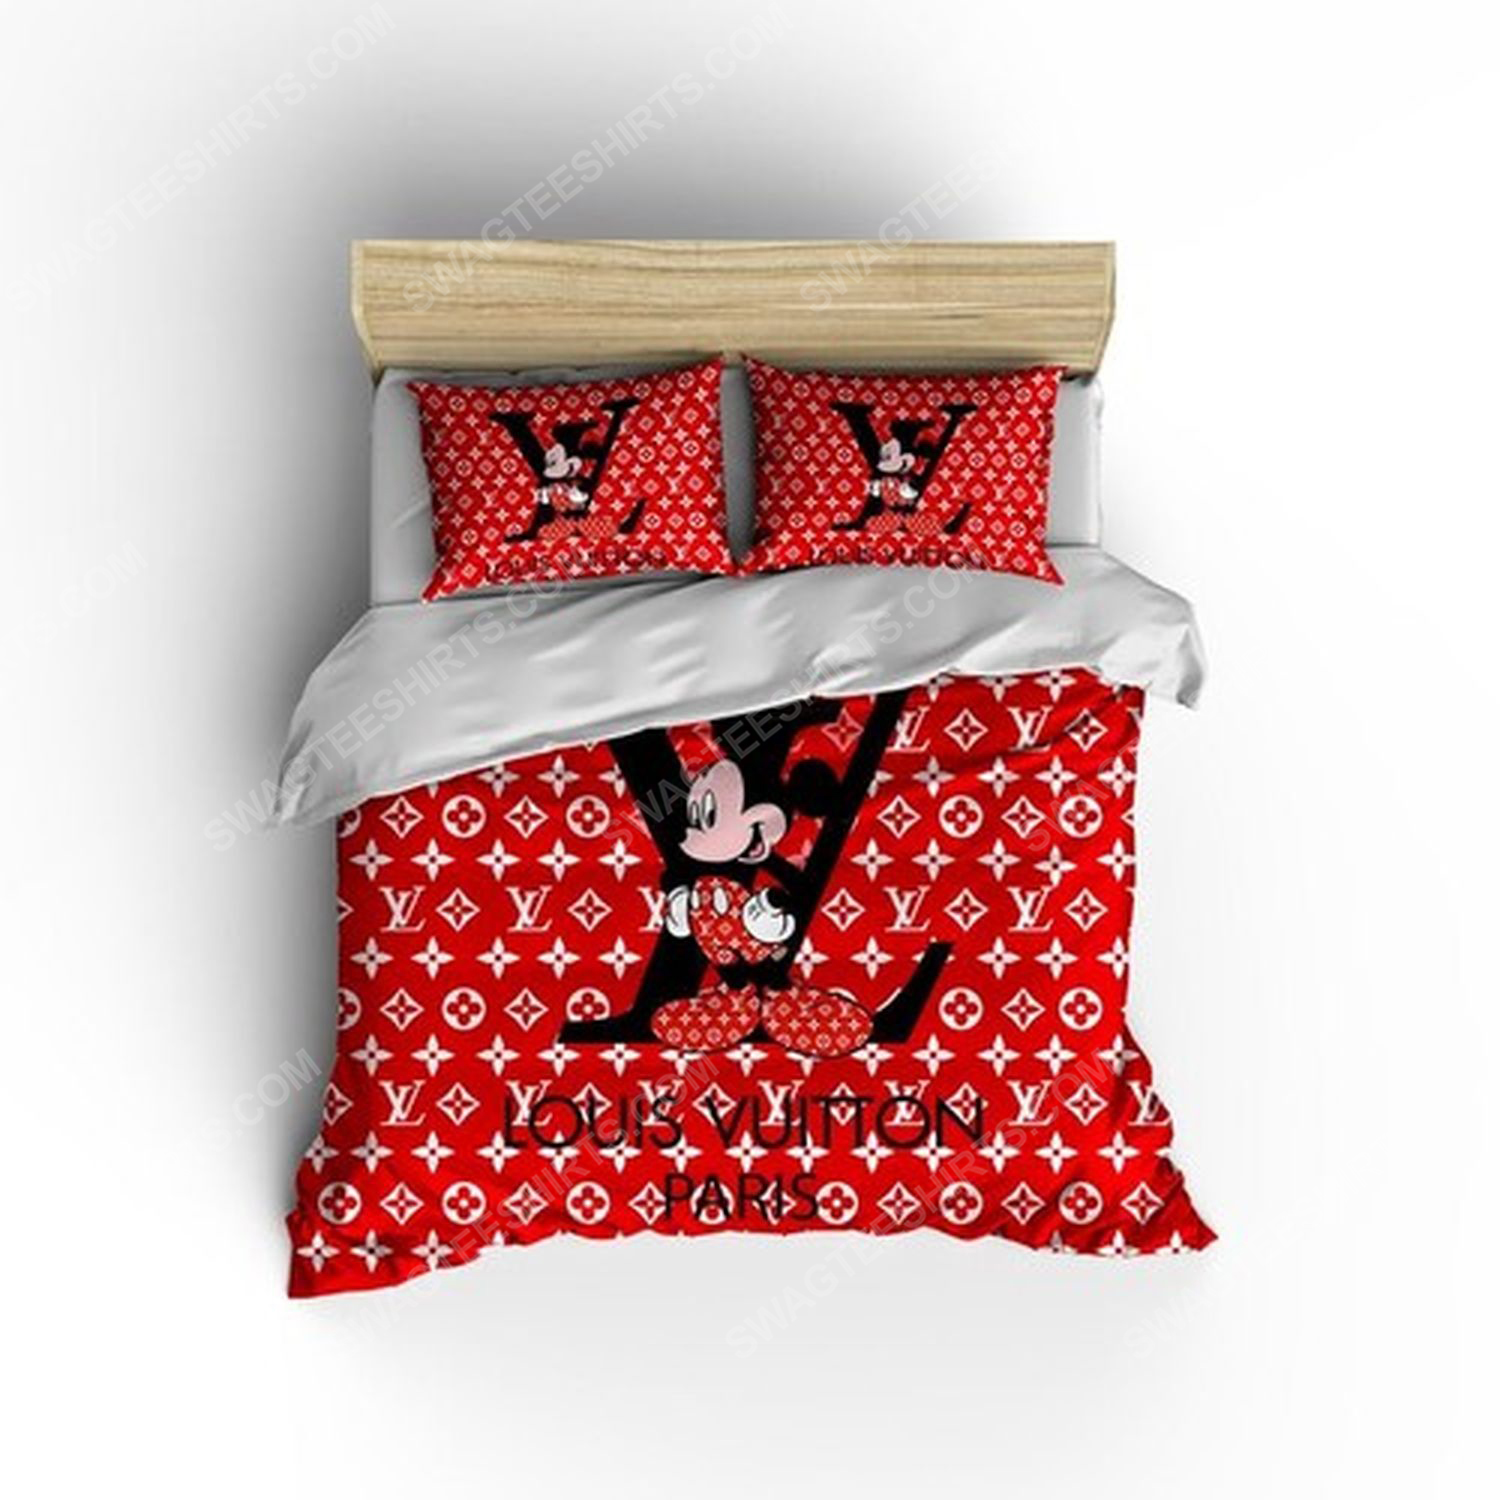 Lv and mickey mouse full print duvet cover bedding set 2